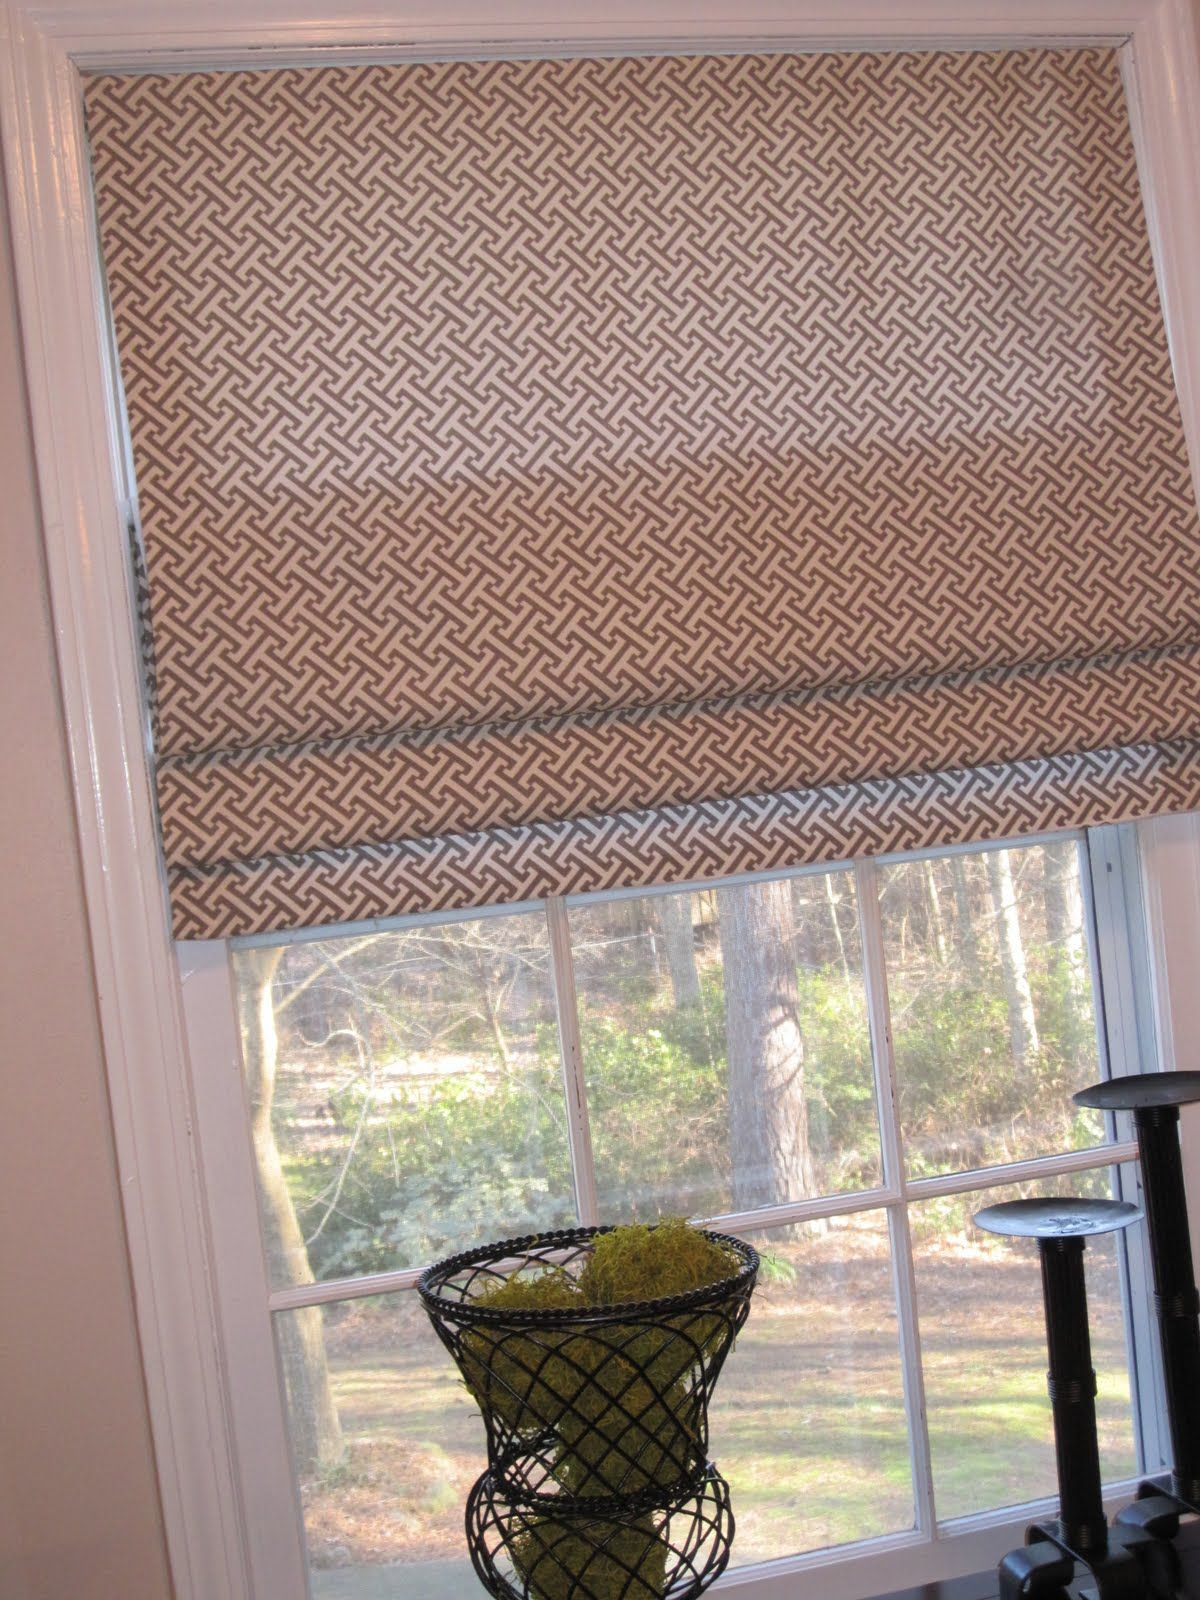 Easy cheap diy window treatments sew for your home for Shades and window treatments